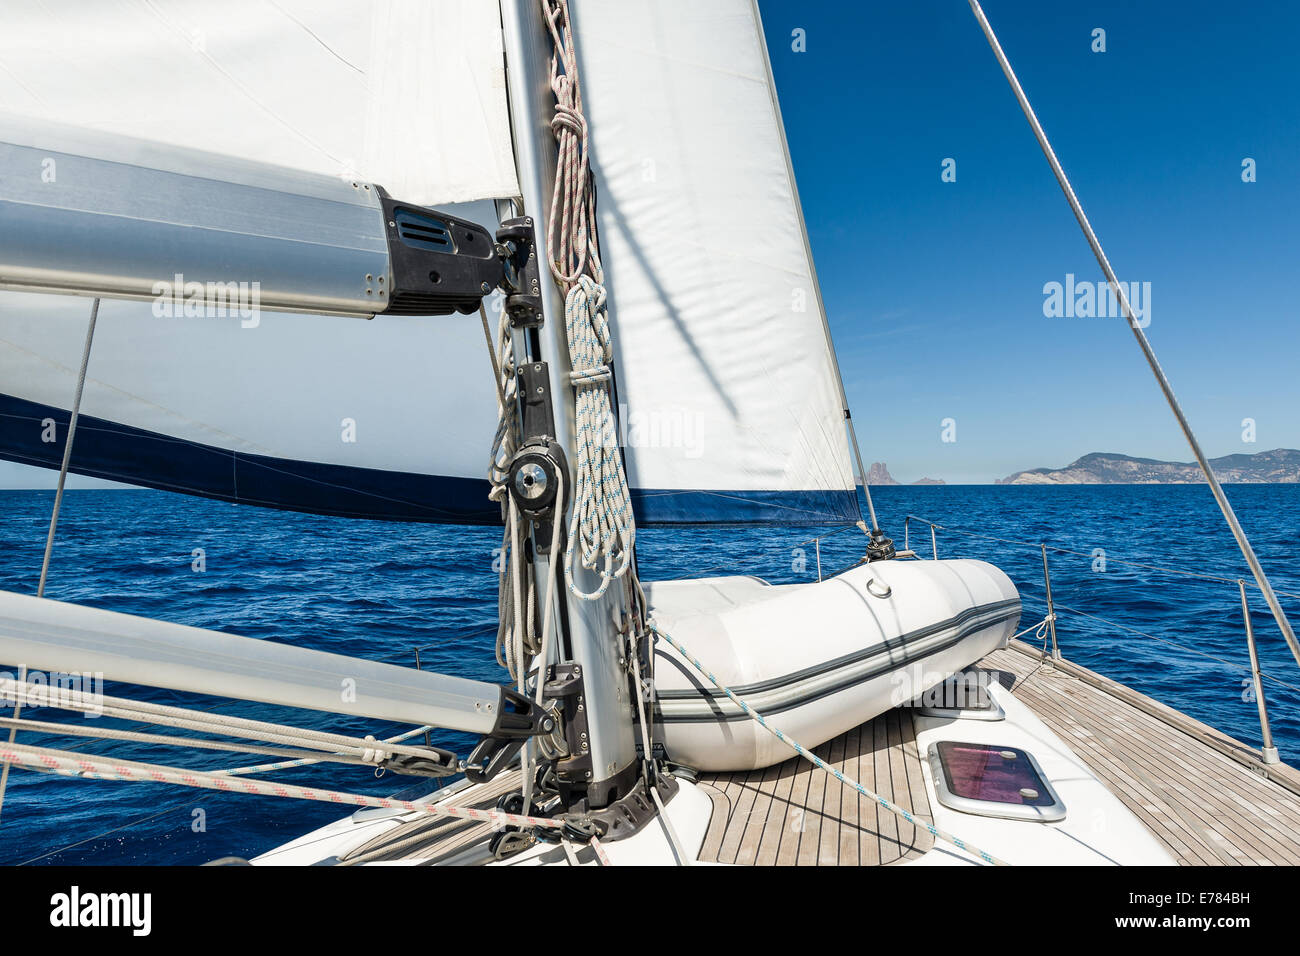 Sailing yacht going on her sails in calm weather - Stock Image